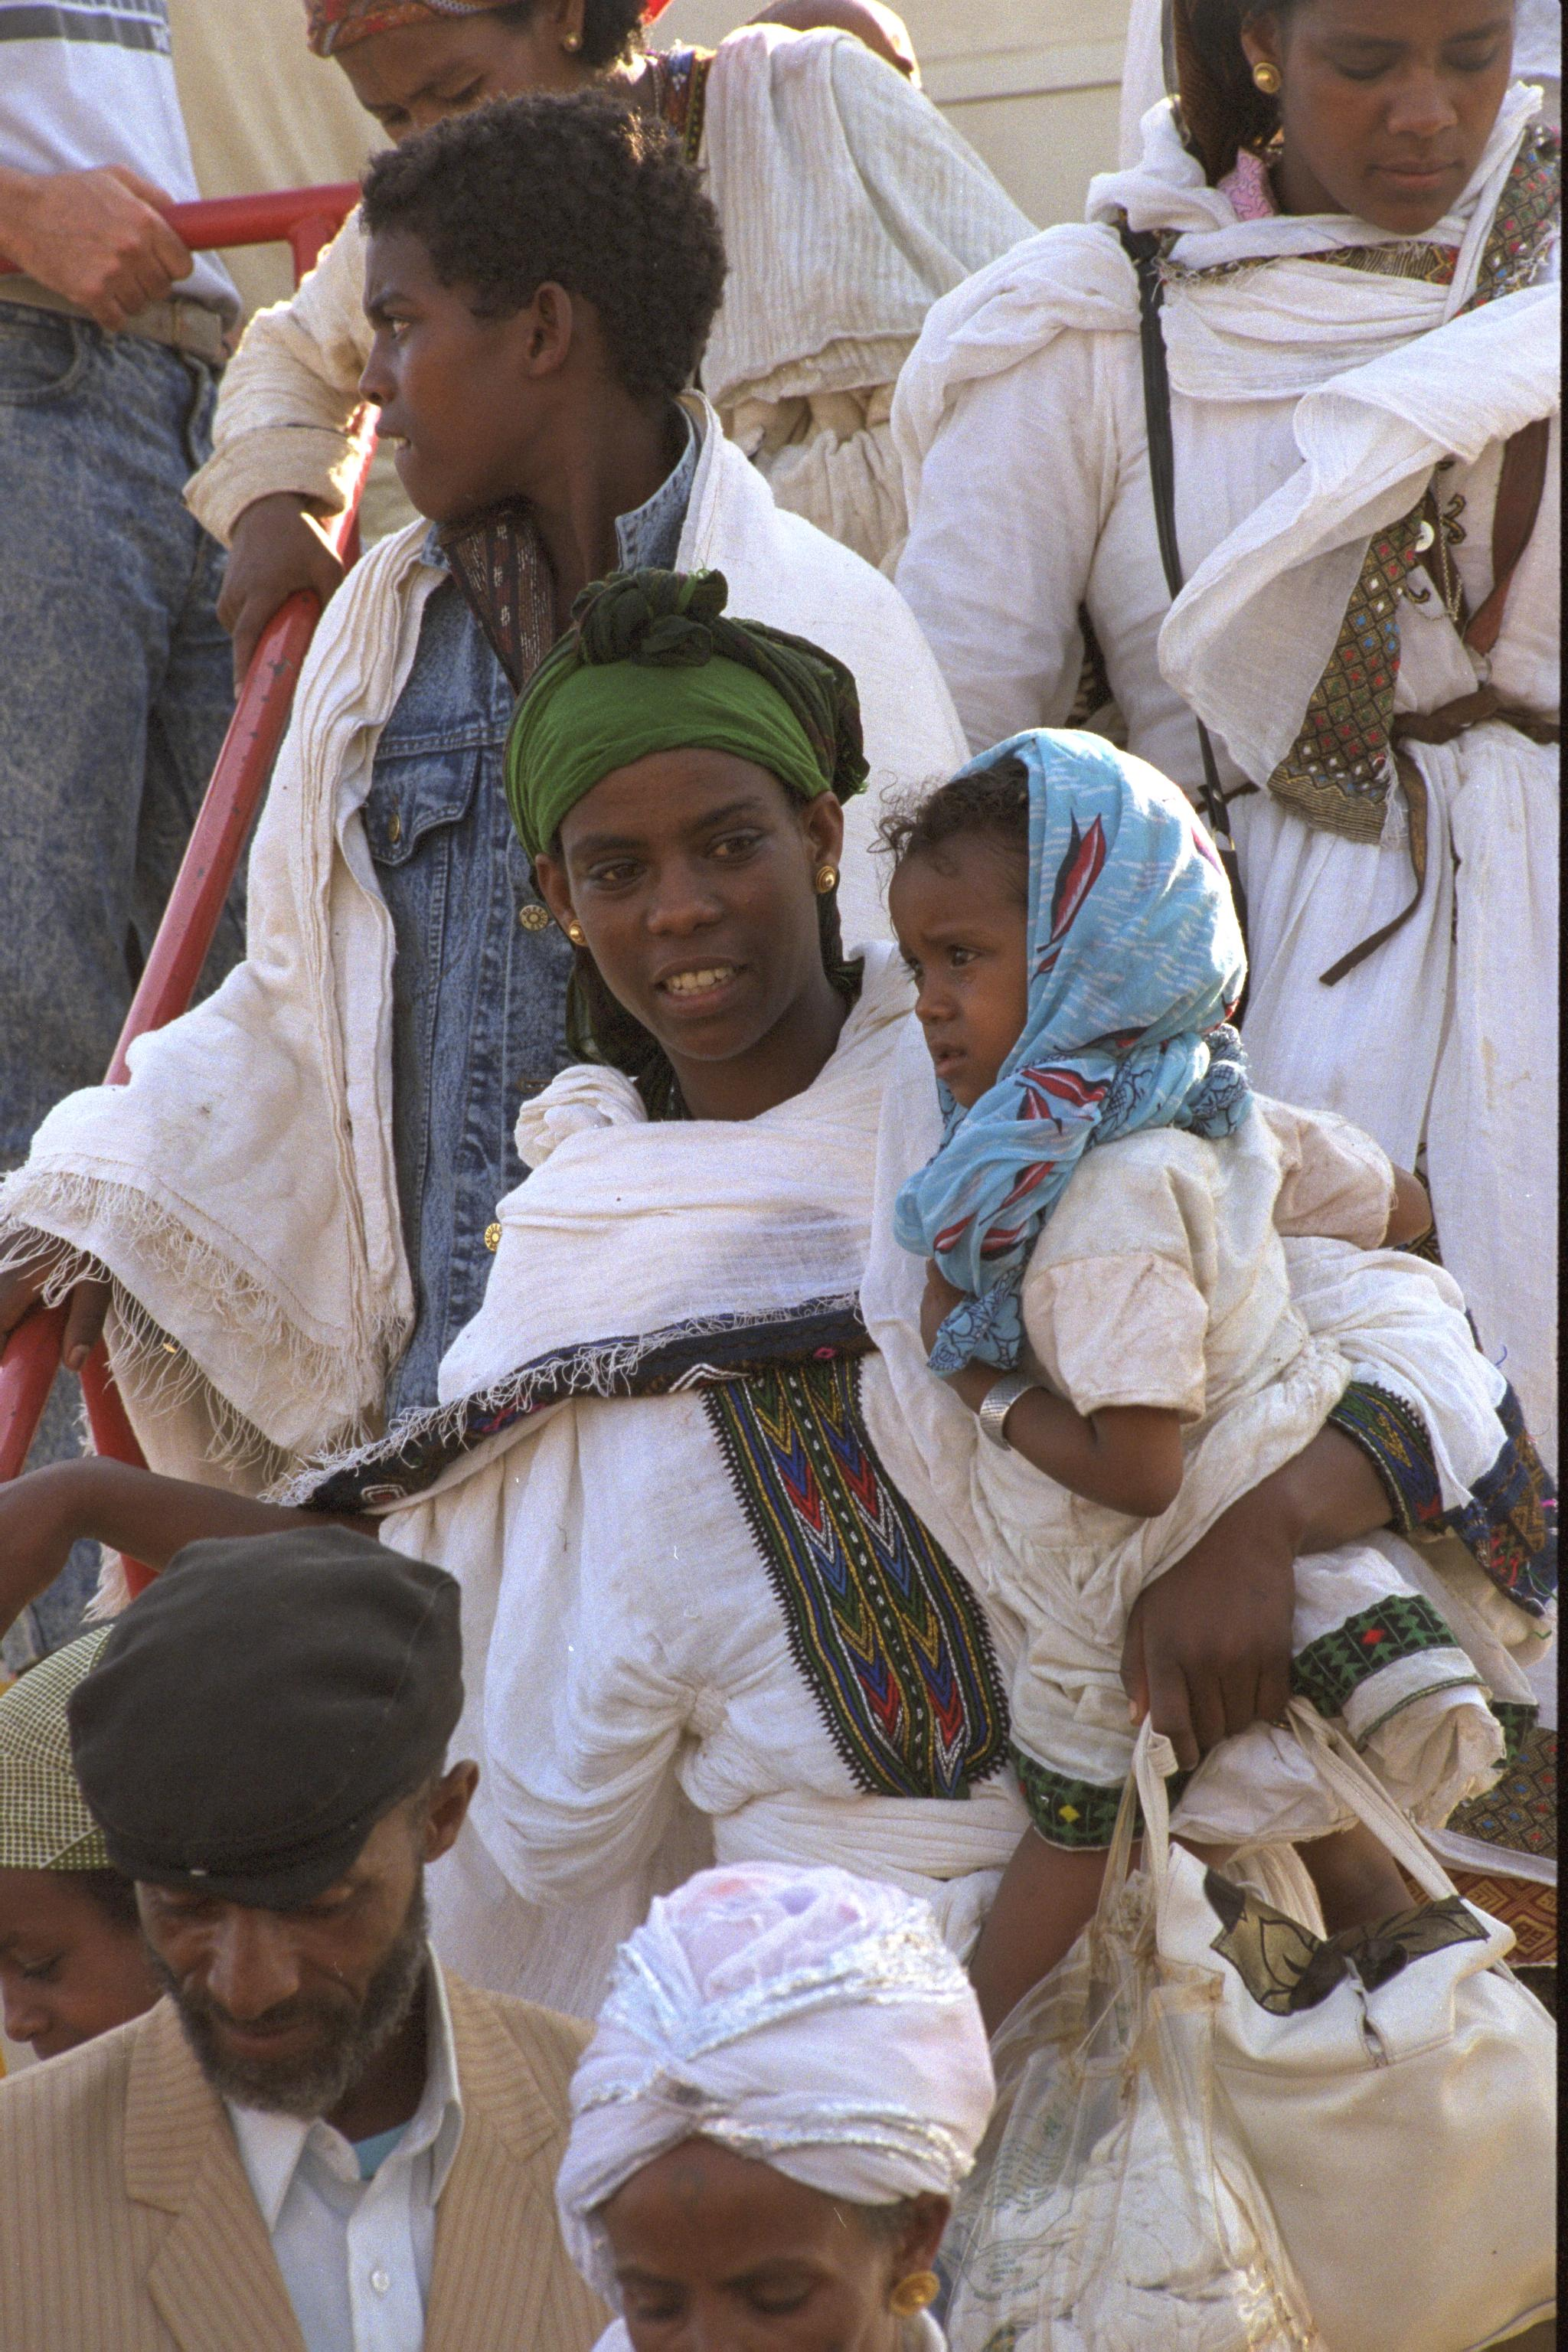 ethiopian immigrants in the united states The united states experienced major waves of immigration during the colonial era, the first part of the 19th century and from the 1880s to 1920 many immigrants came to america seeking greater economic opportunity, while some, such as the pilgrims in the early 1600s, arrived in search of religious.